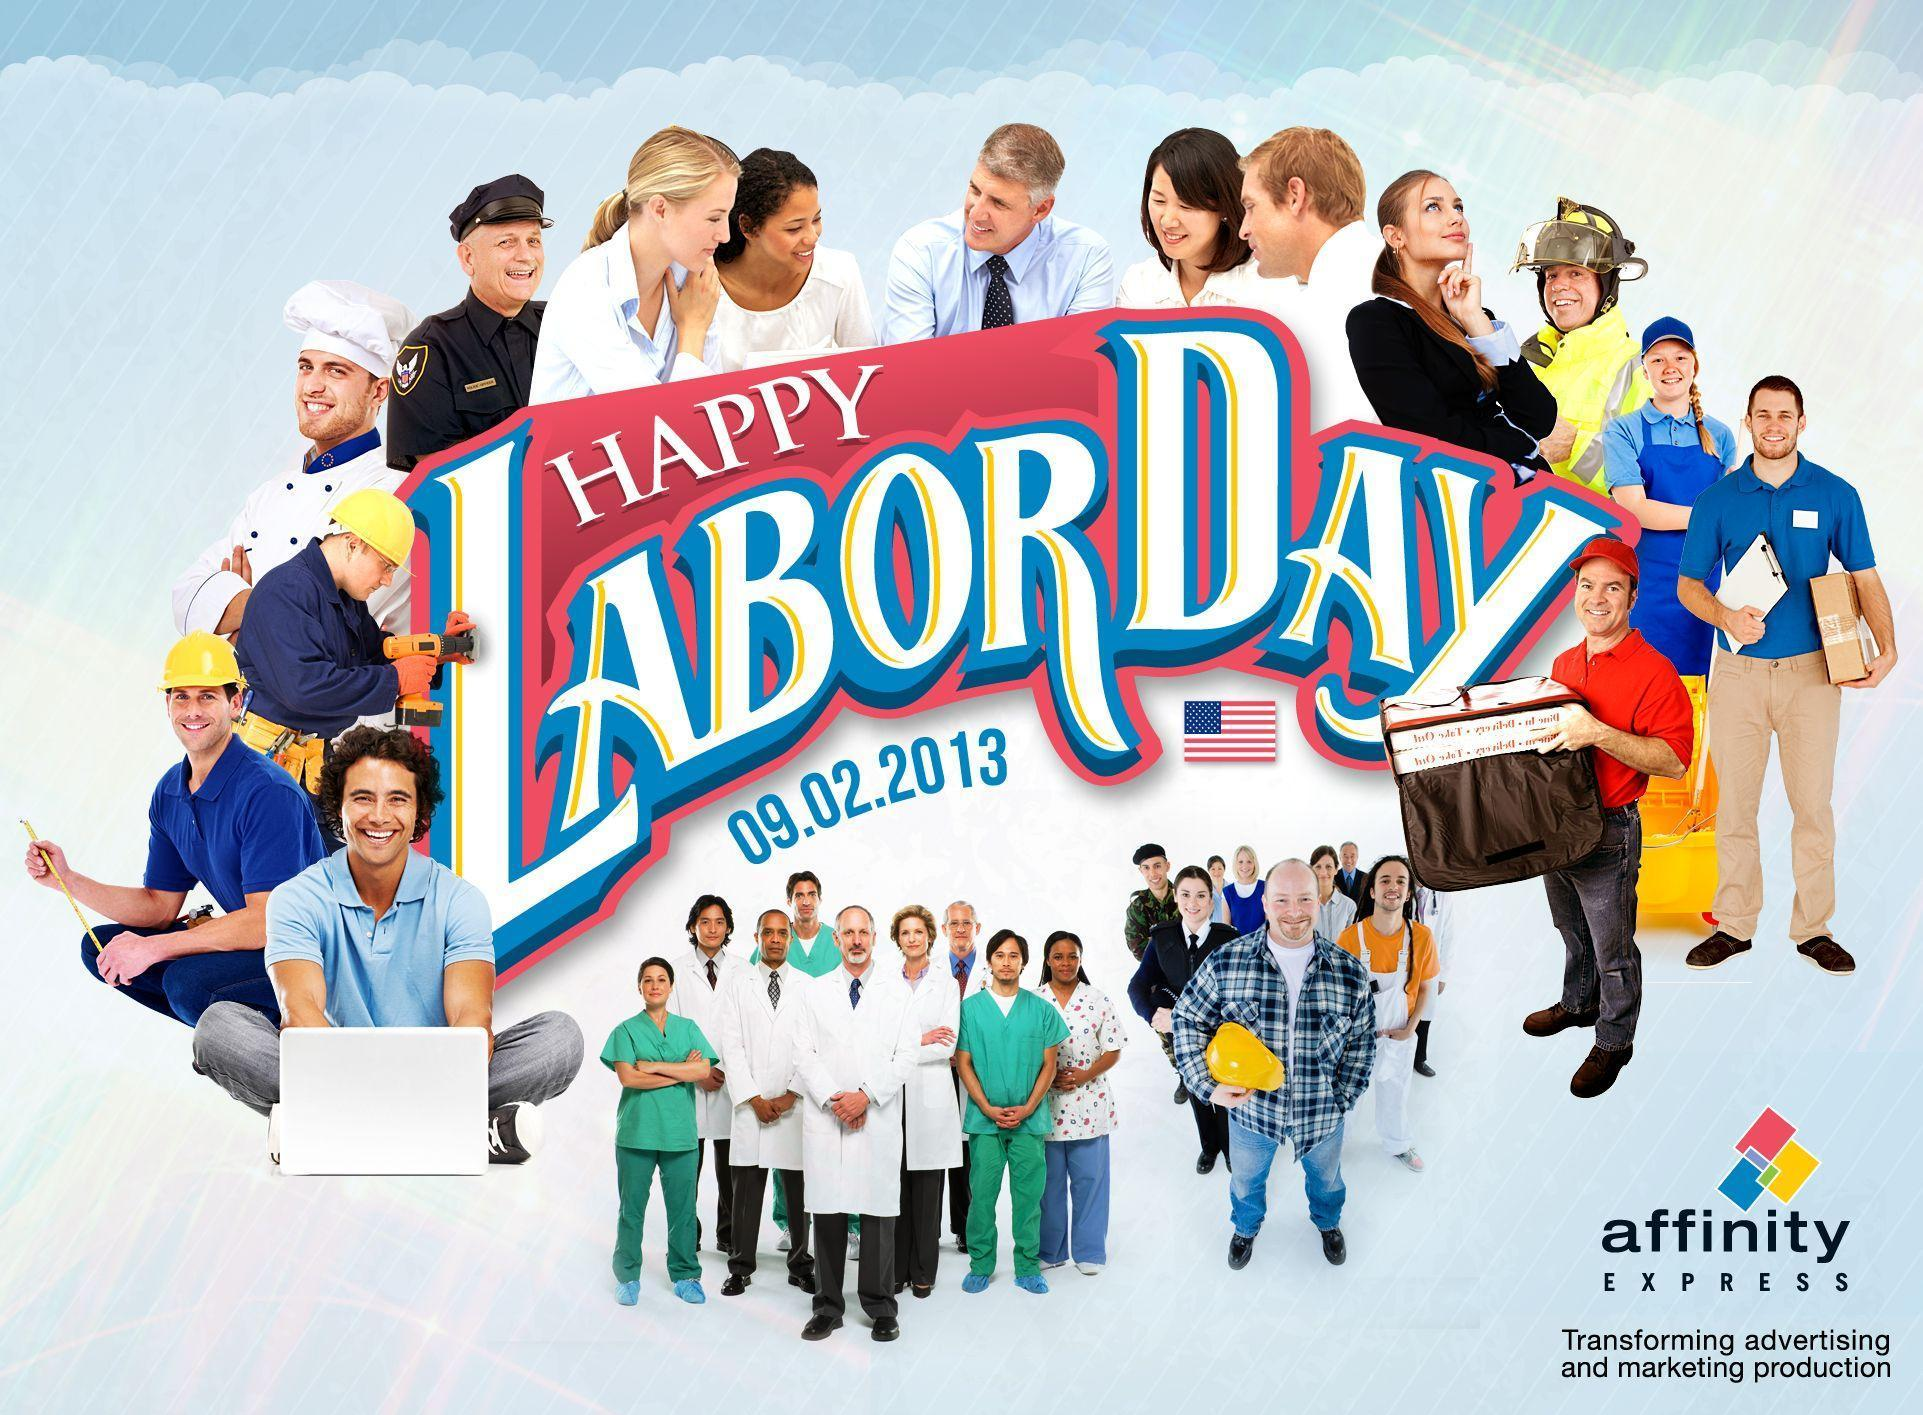 Wallpapers Labor Day Visual 1827532. 1923x1415 | #1827533 #labor day